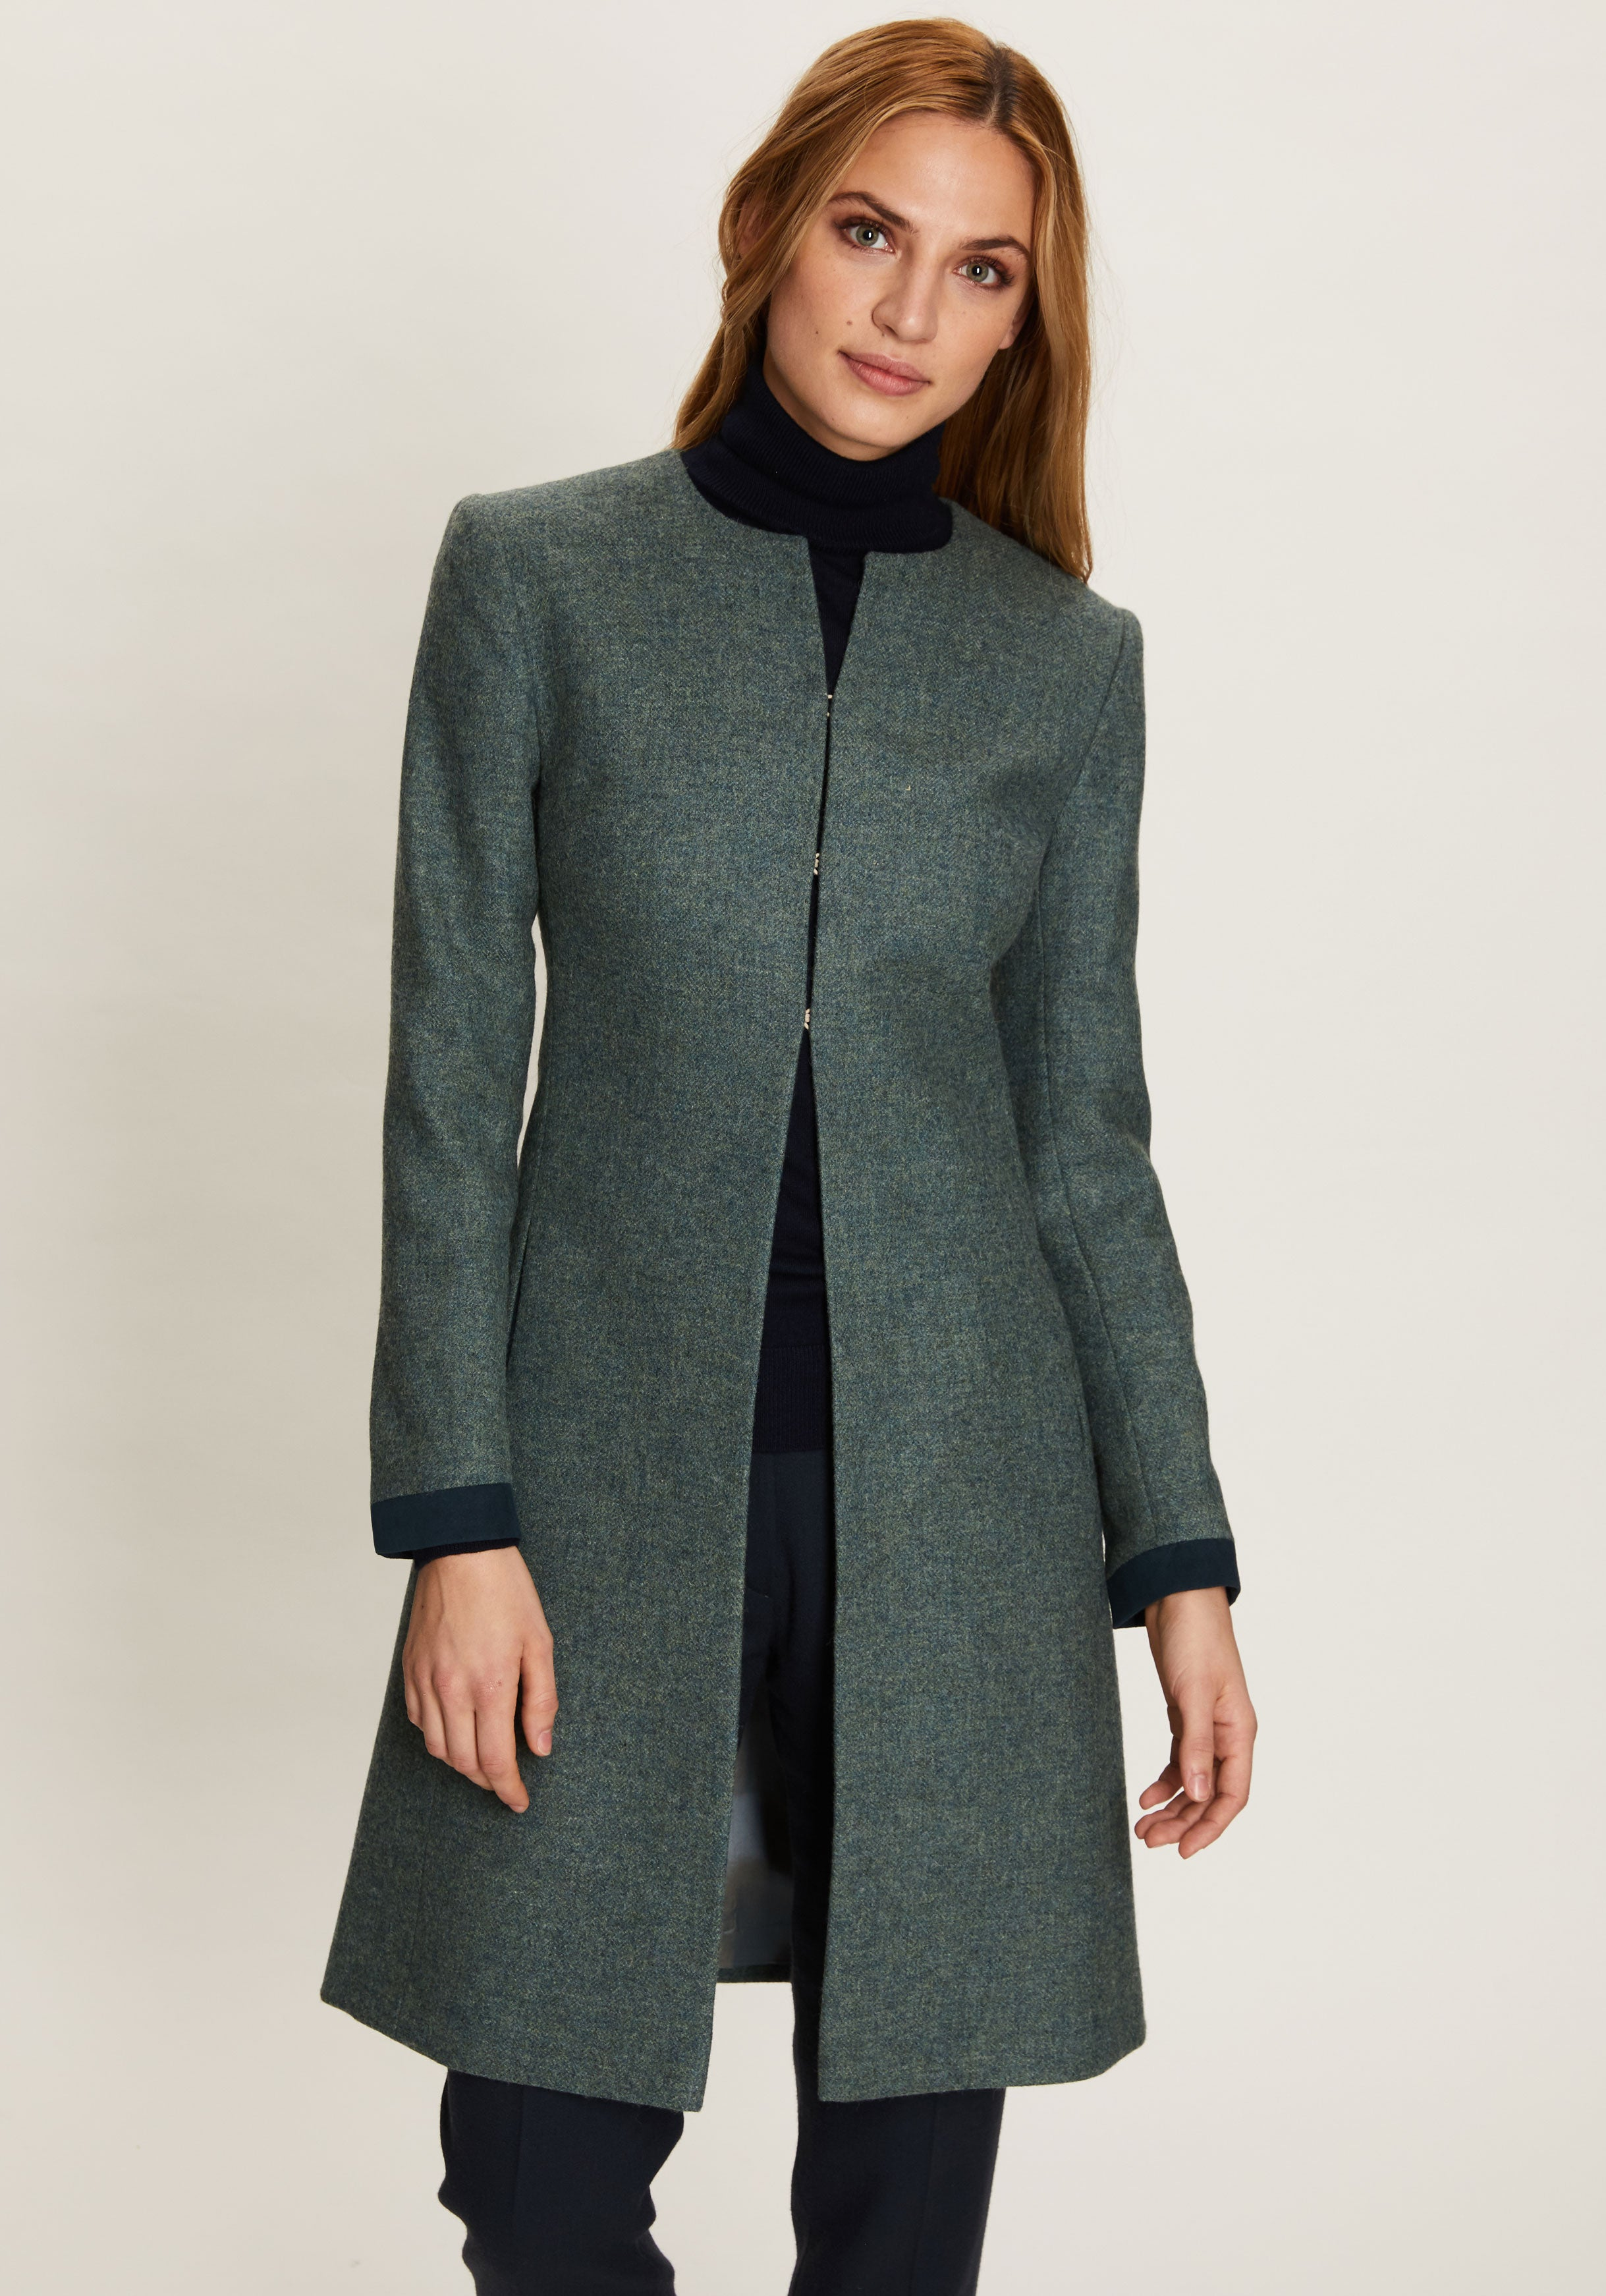 Tallulah Coat | Teal Herringbone